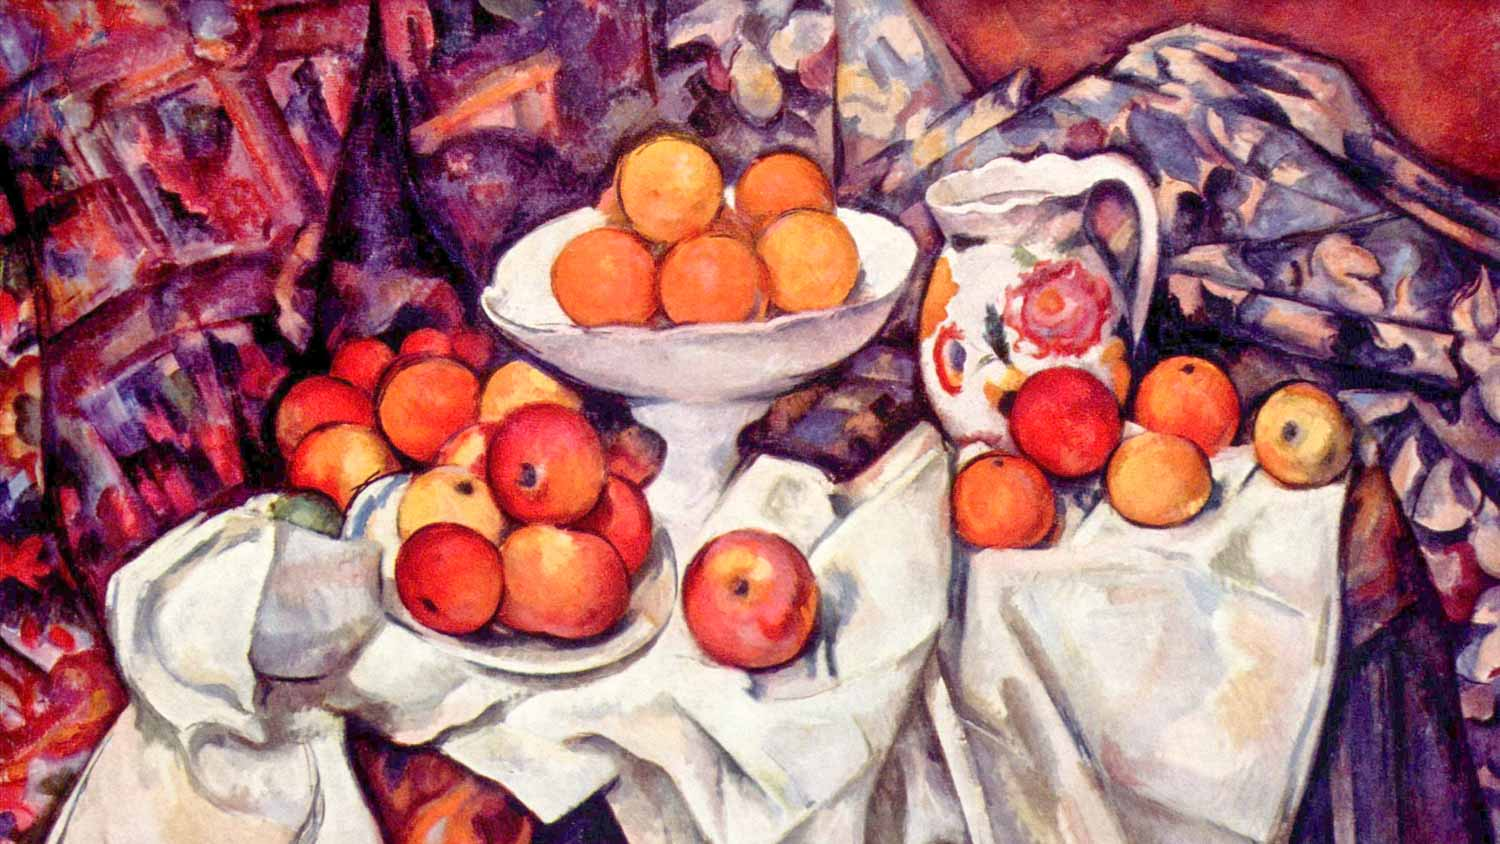 Apples and Oranges (1899)